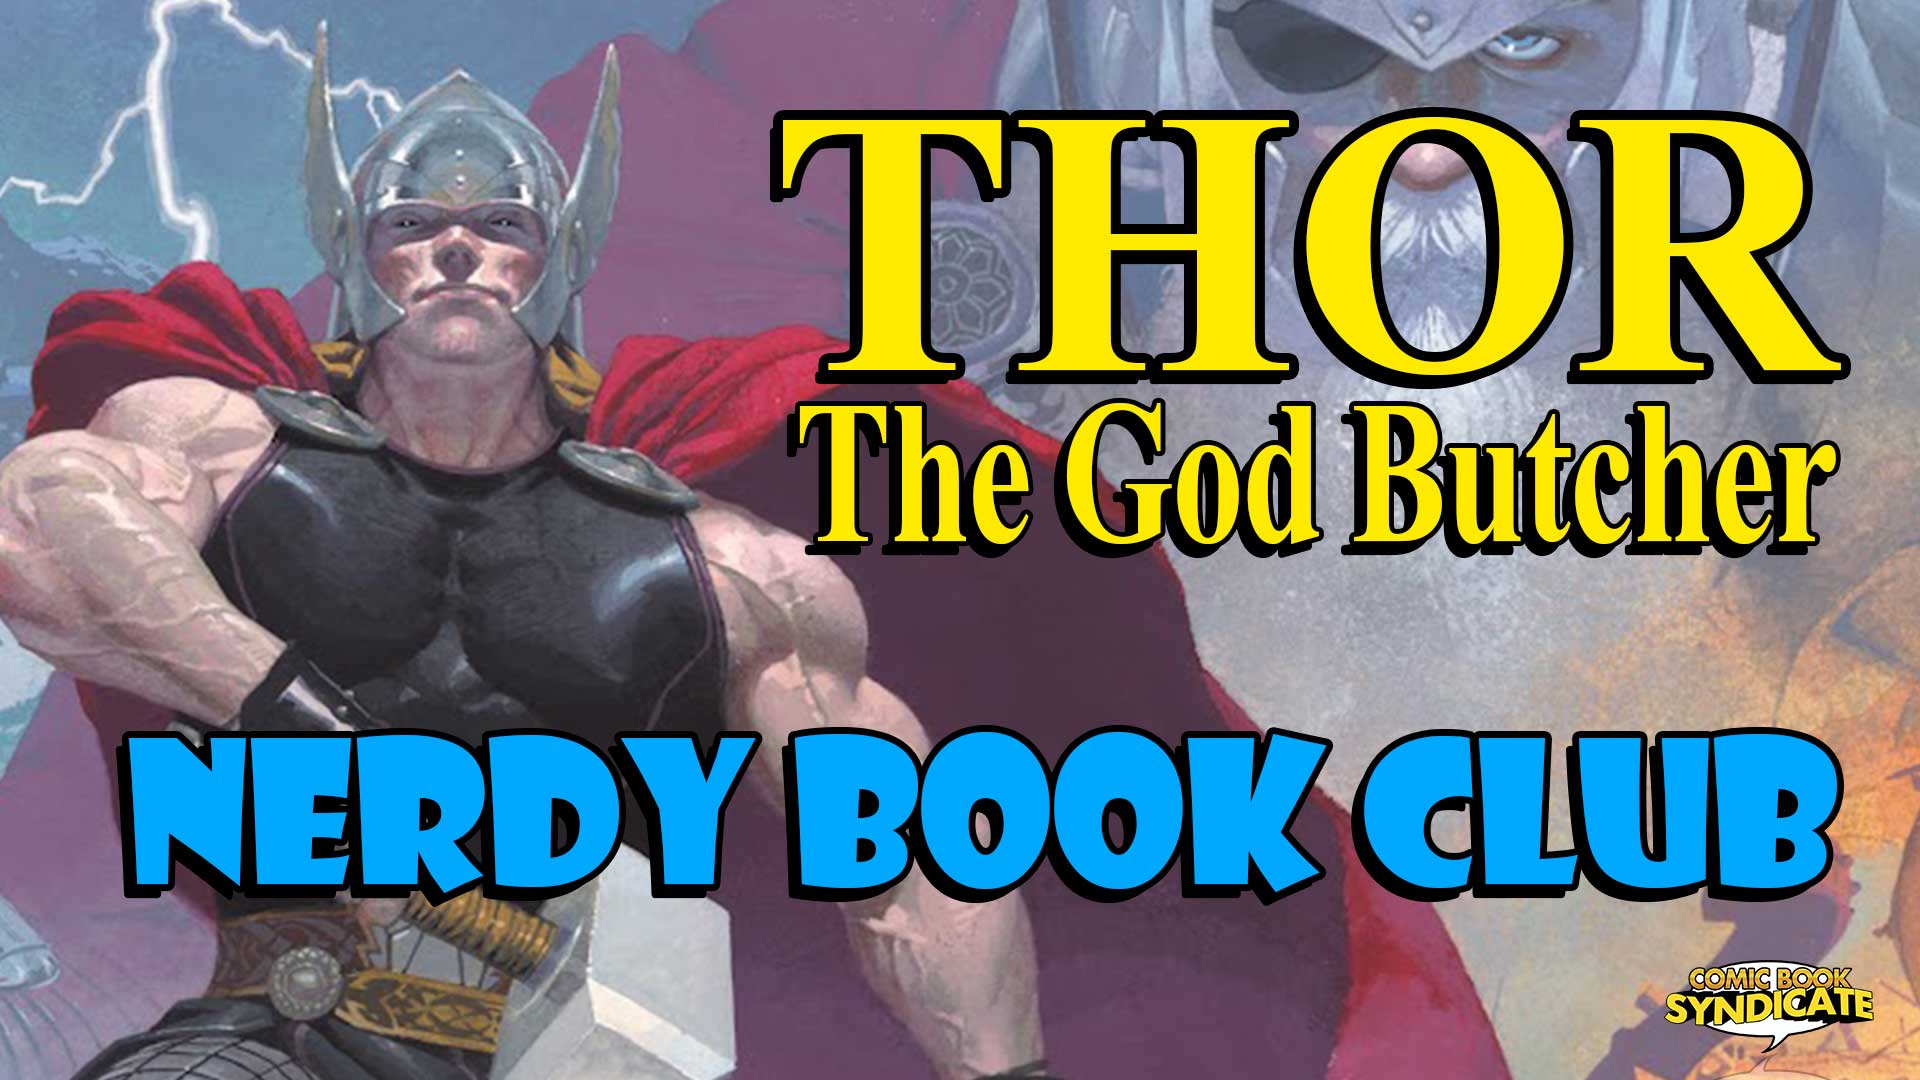 Thor: The God Butcher - Nerdy Book Club